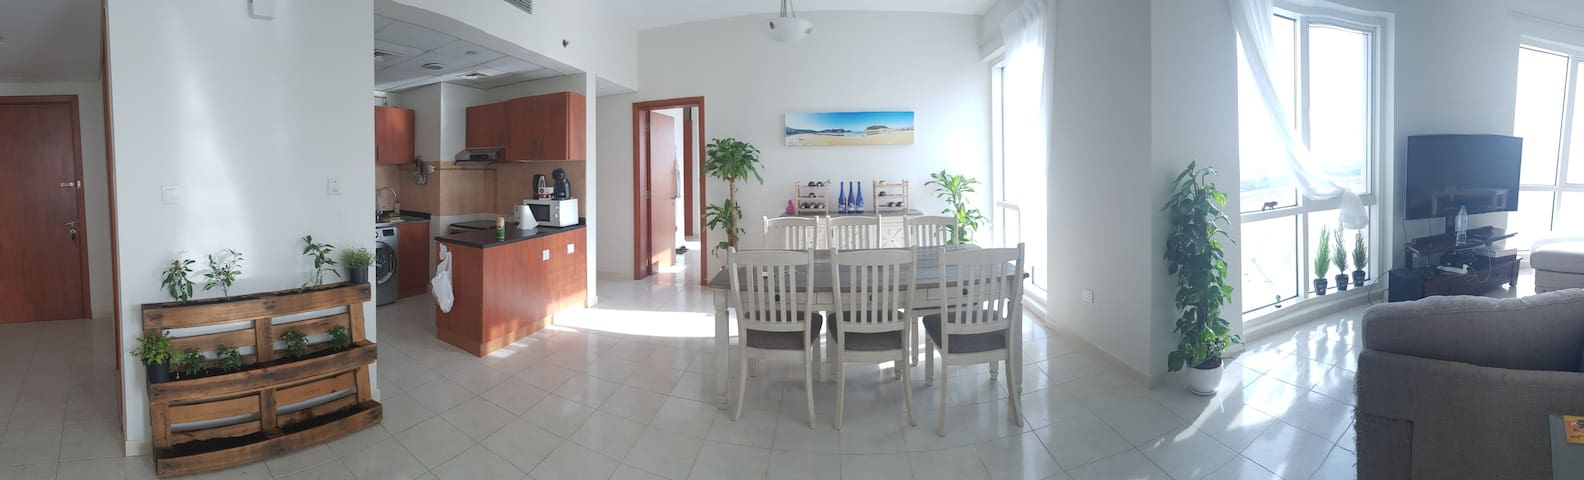 Beautiful Masteroom in Cozy&Homely Apt w/ Lakeview